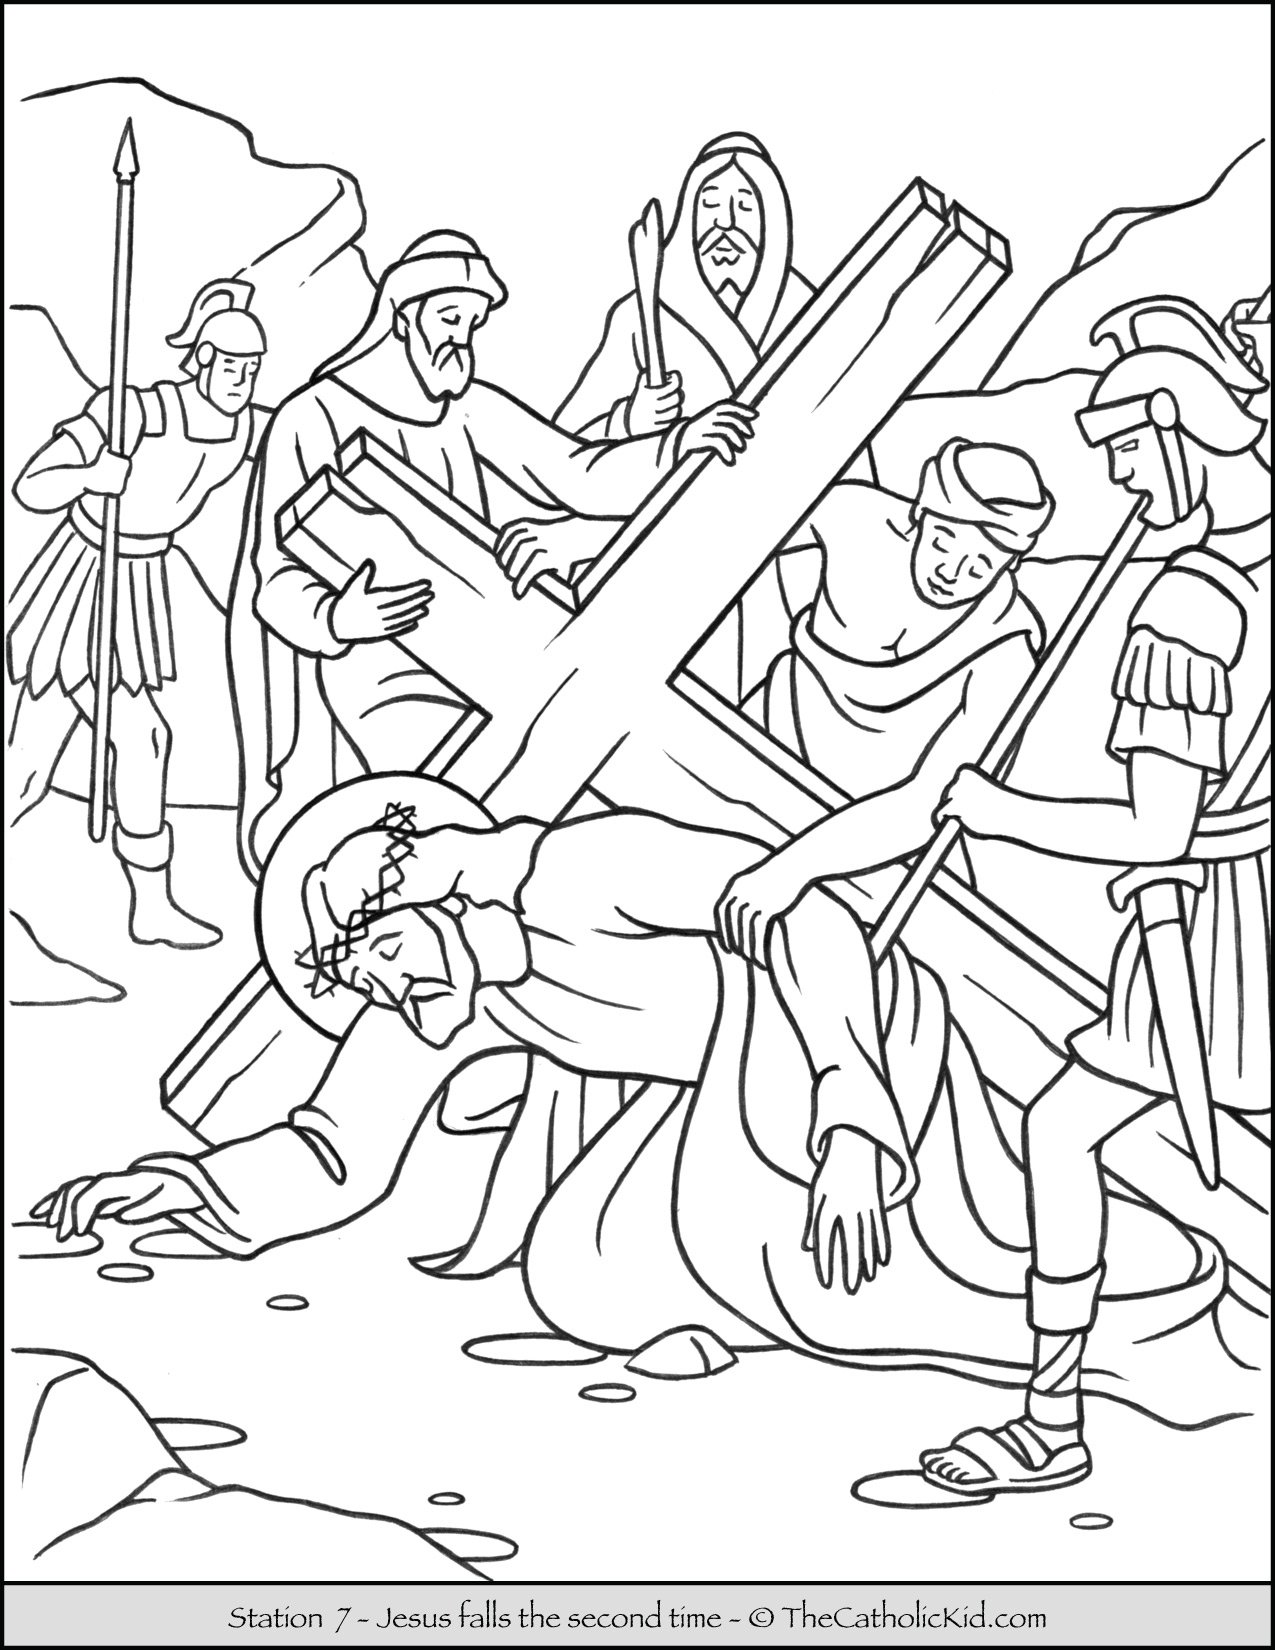 Stations of the Cross Catholic Coloring Pages for Kids 7